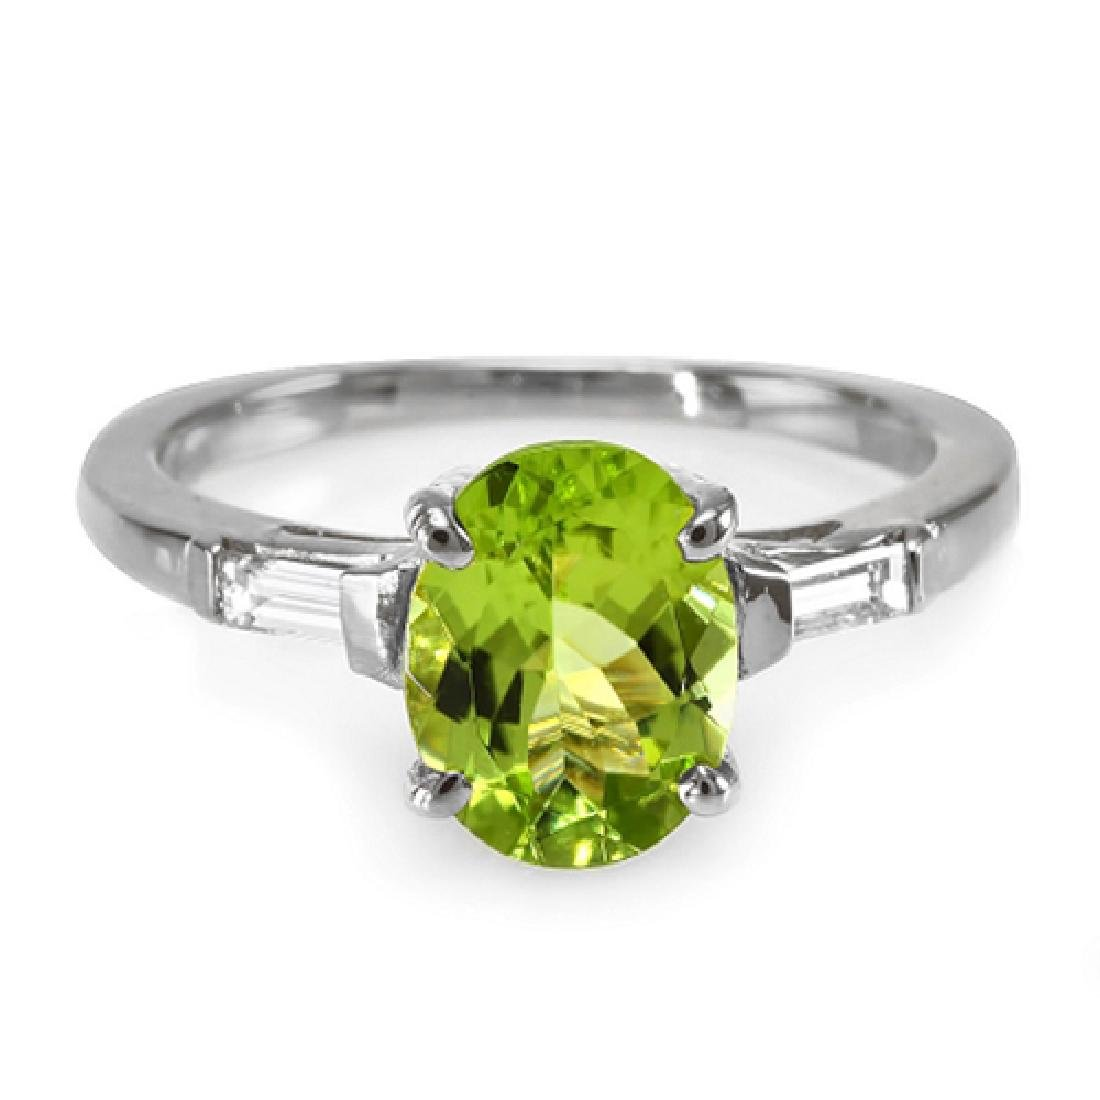 2.16 Carat Natural Peridot 18K Solid White Gold Diamond